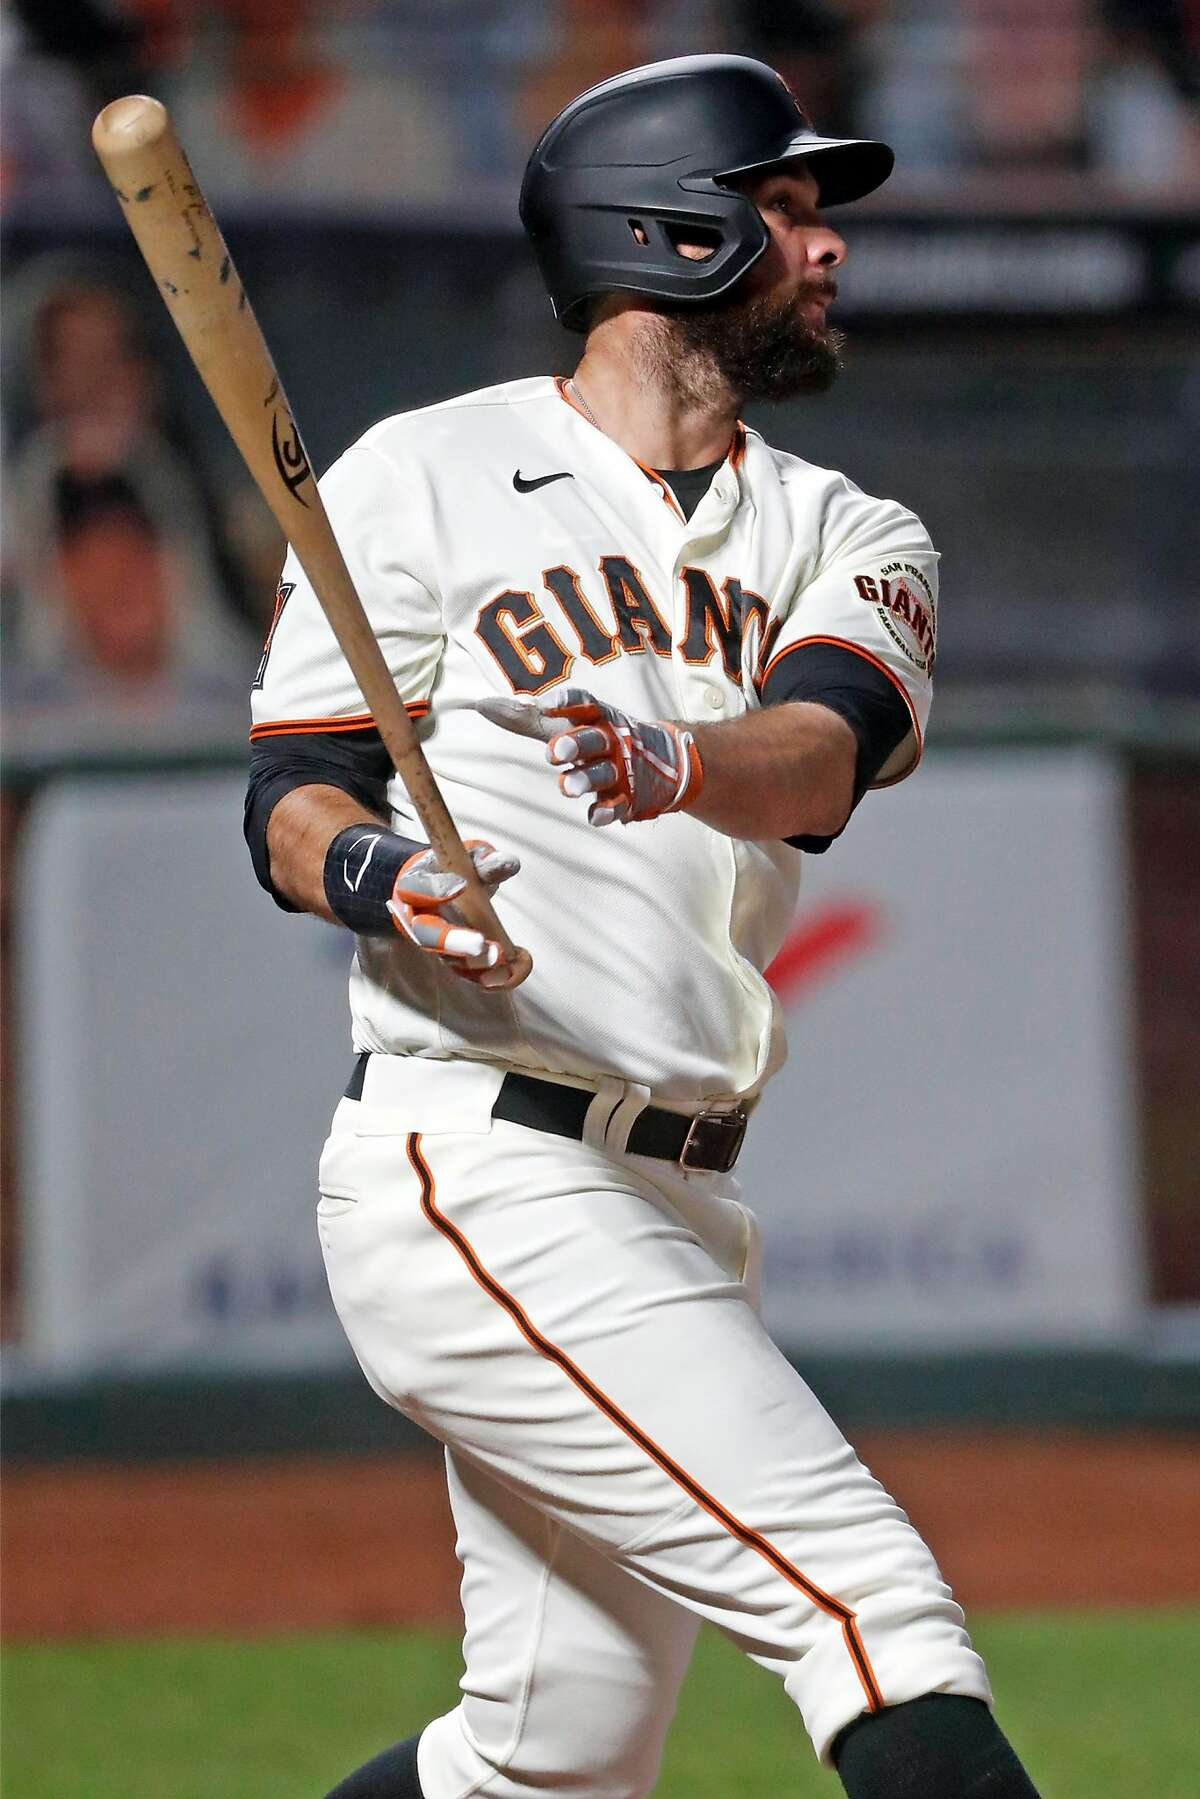 San Francisco Giants' Brandon Belt watches his 2-run home run in 3rd inning against Seattle Mariners during MLB game at Oracle Park in San Francisco, Calif., on Wednesday, September 16, 2020.